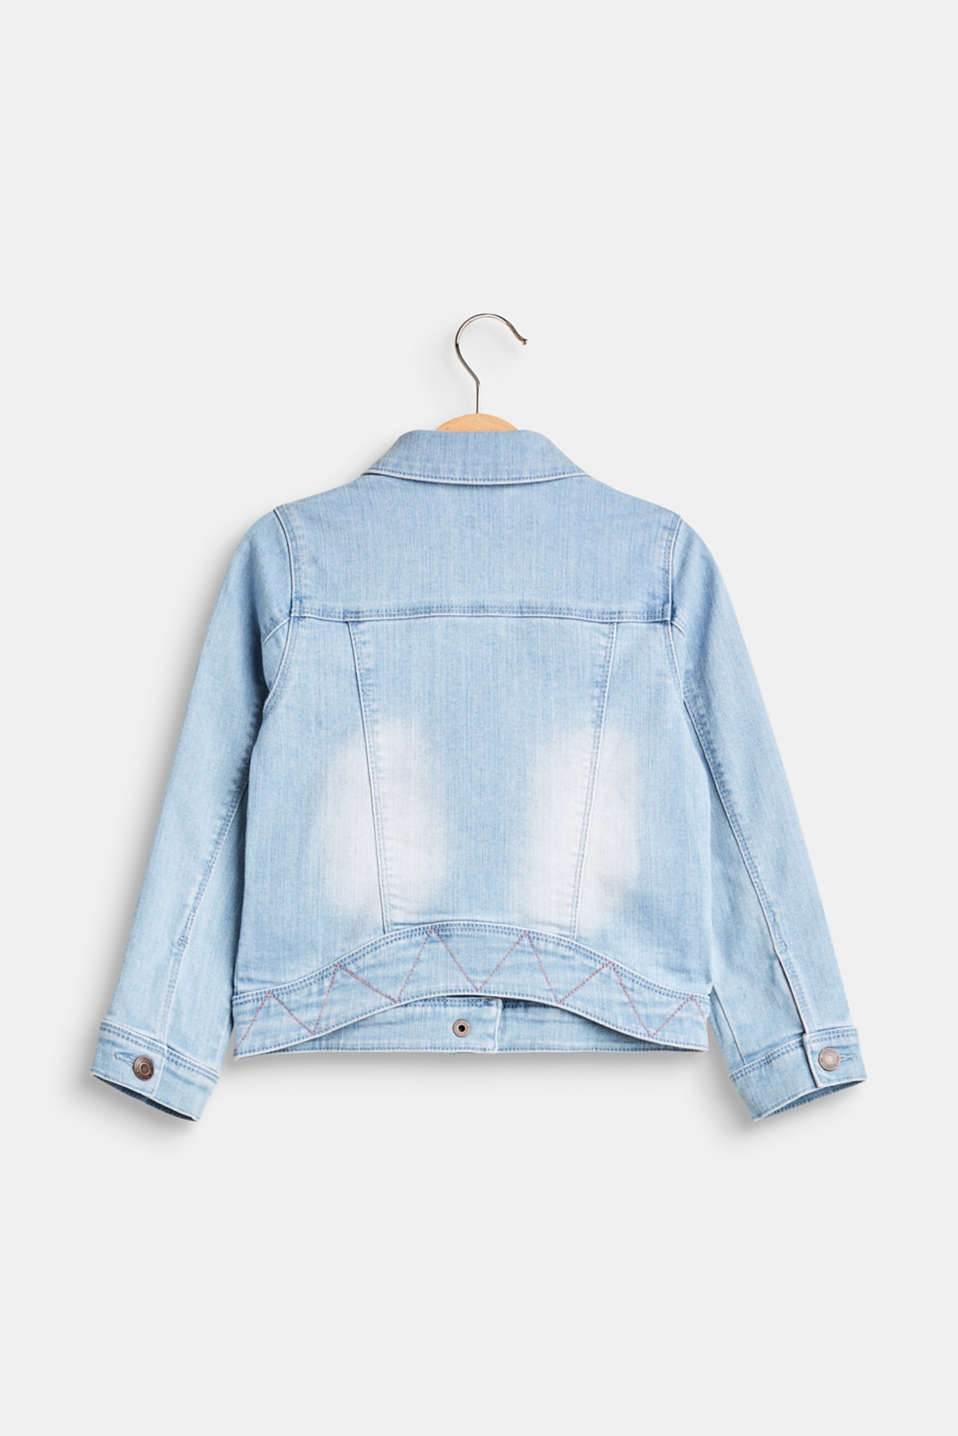 Denim jacket with appliqués, in blended cotton